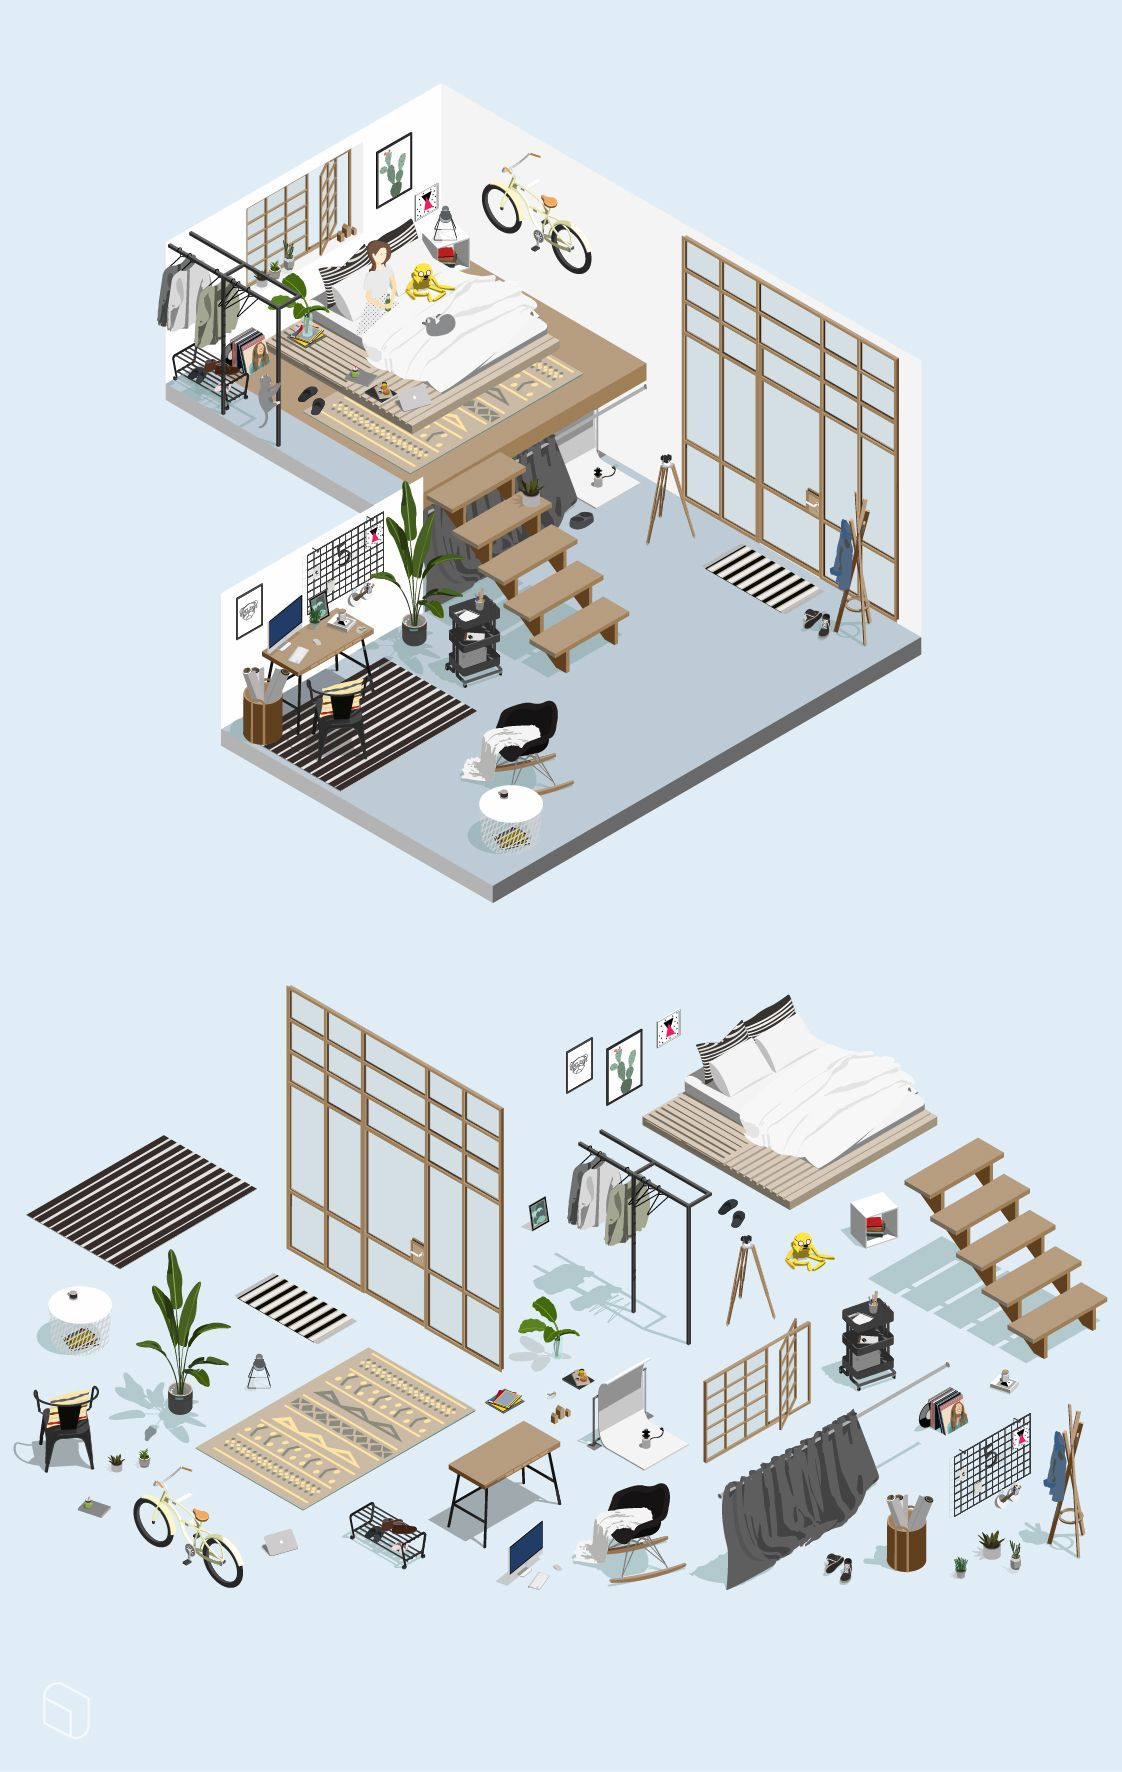 Magazine Deco Maison Pdf Gratuit Pin By Toffu On Isometric Architecture Collage Interior